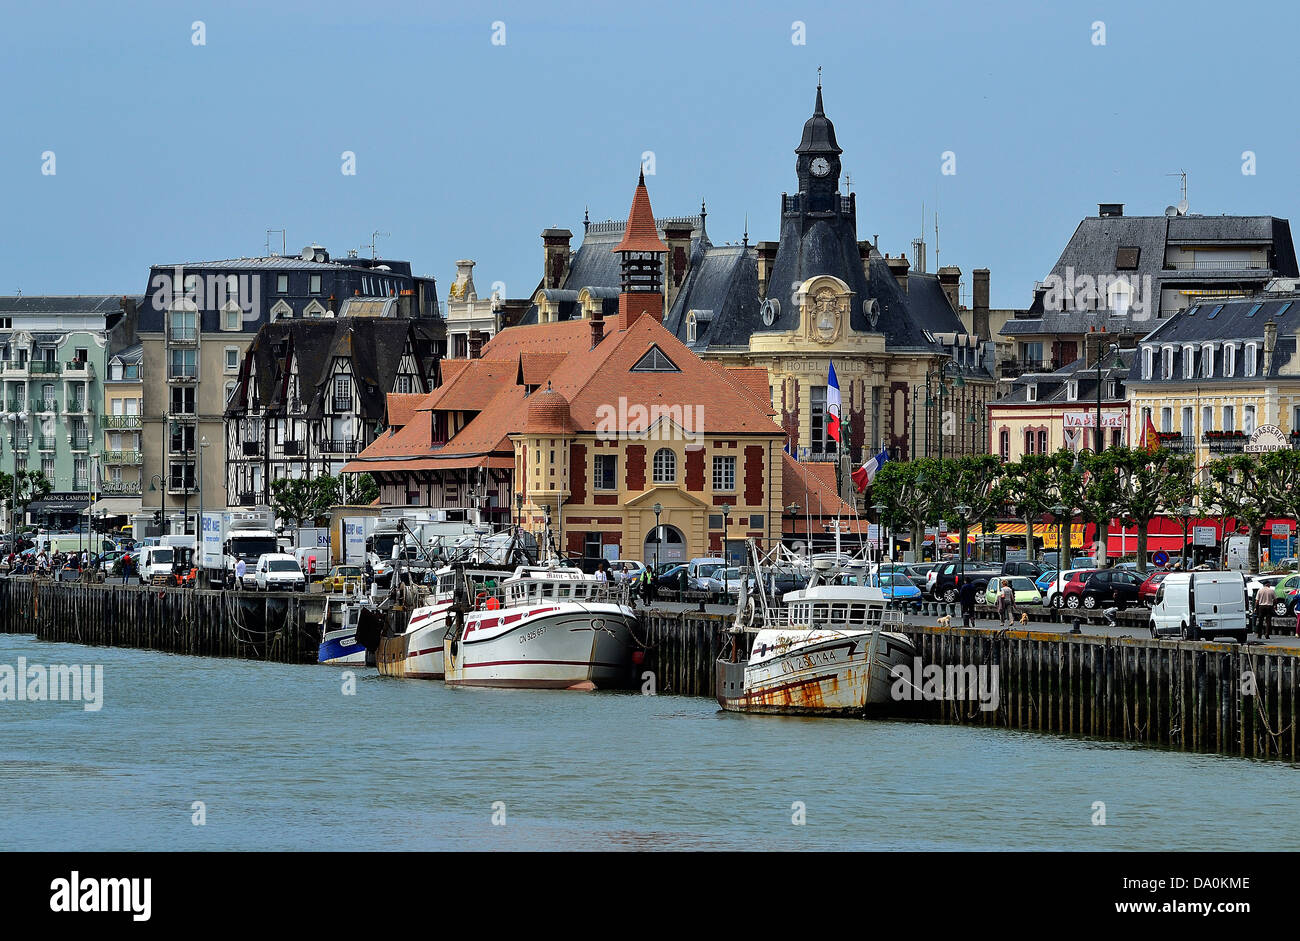 Port of trouville sur mer touques river town hall in the - Office de tourisme trouville sur mer ...